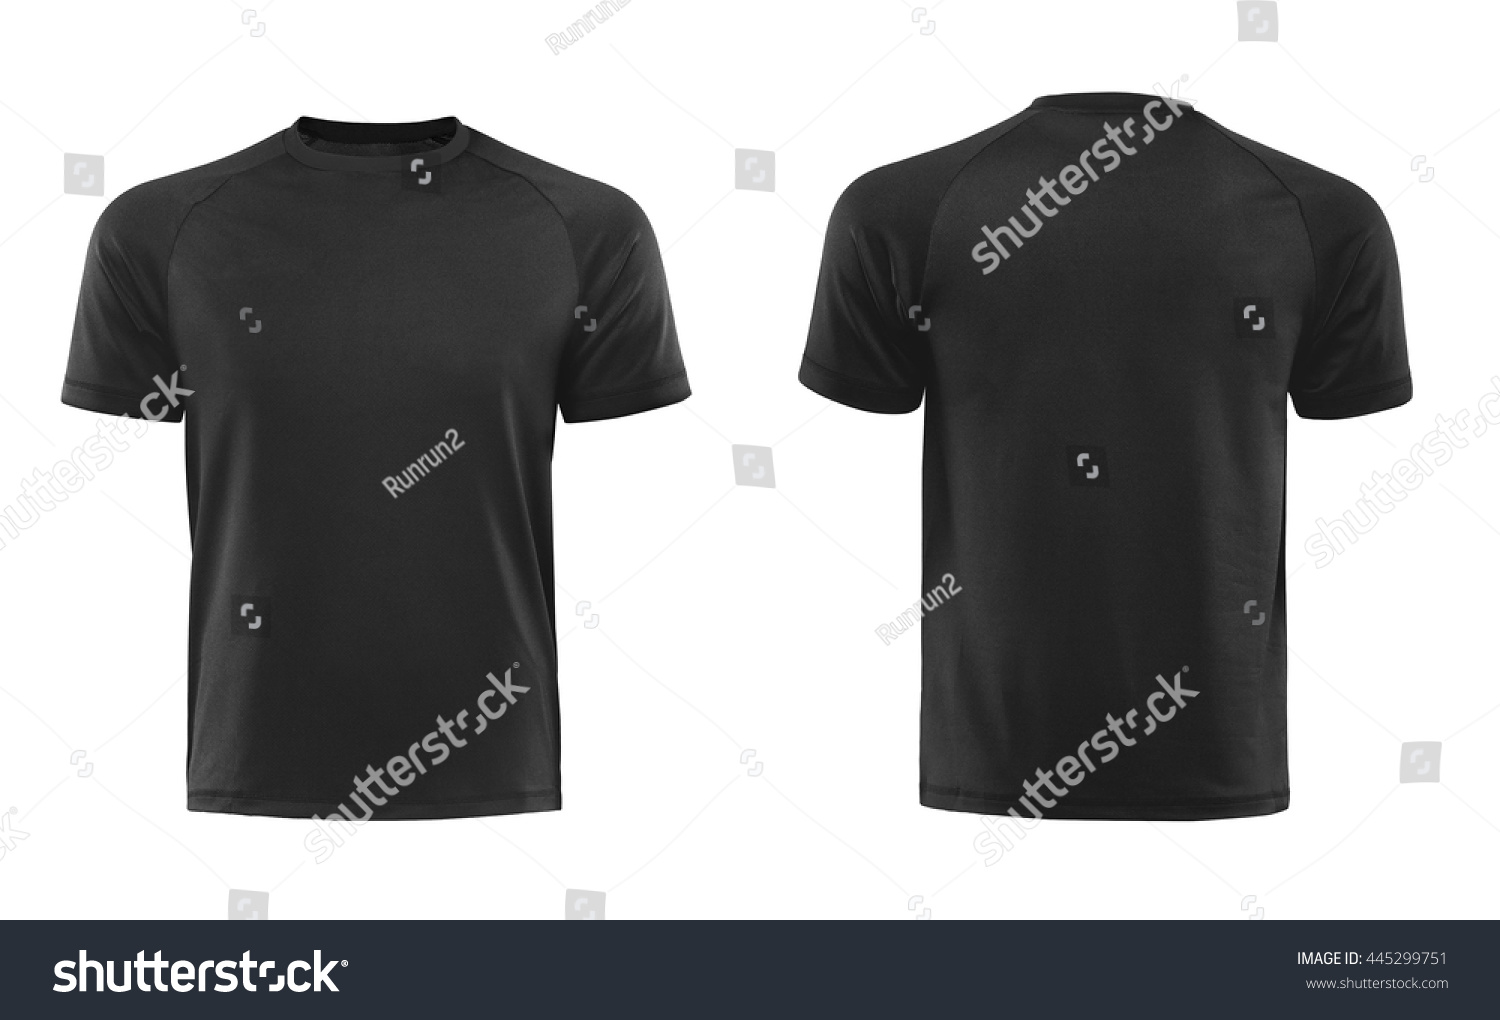 Black t shirt design template - Black T Shirts Front And Back Used As Design Template Isolated On White